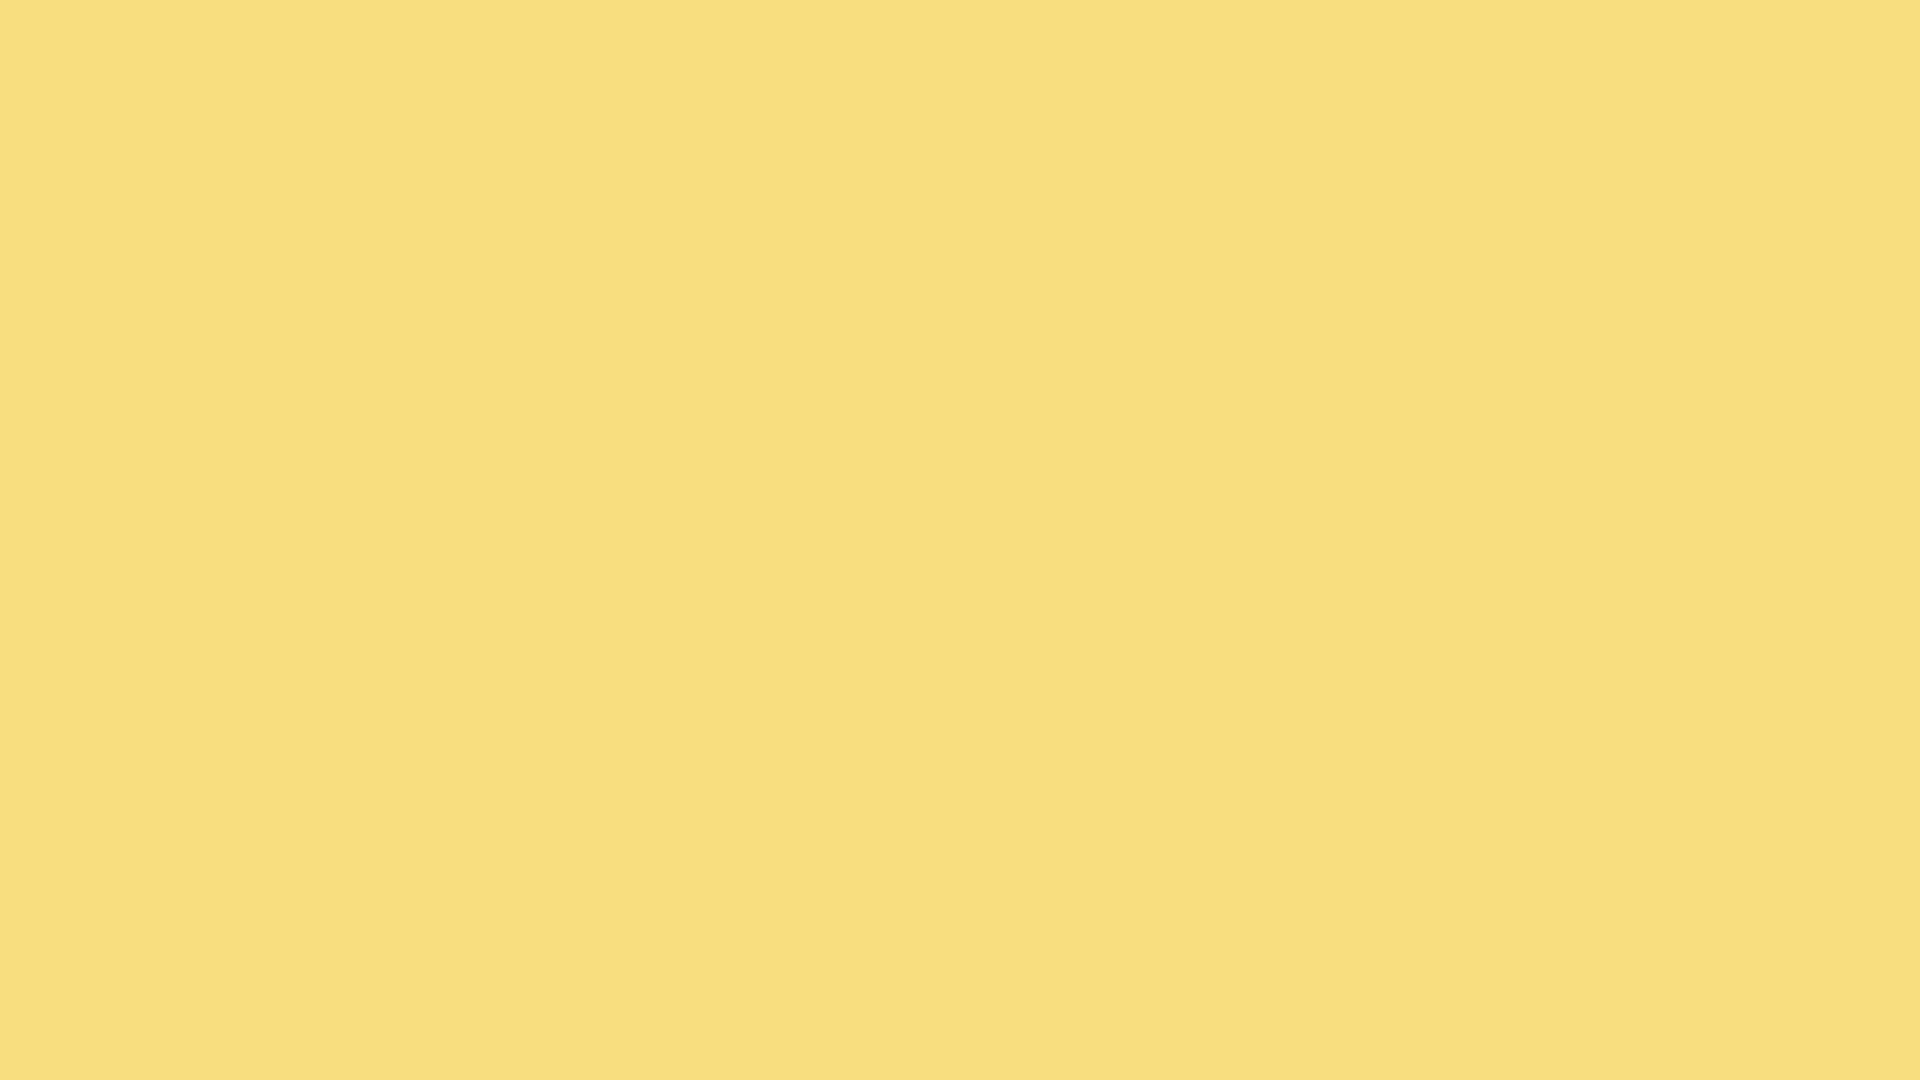 1920x1080 Mellow Yellow Solid Color Background